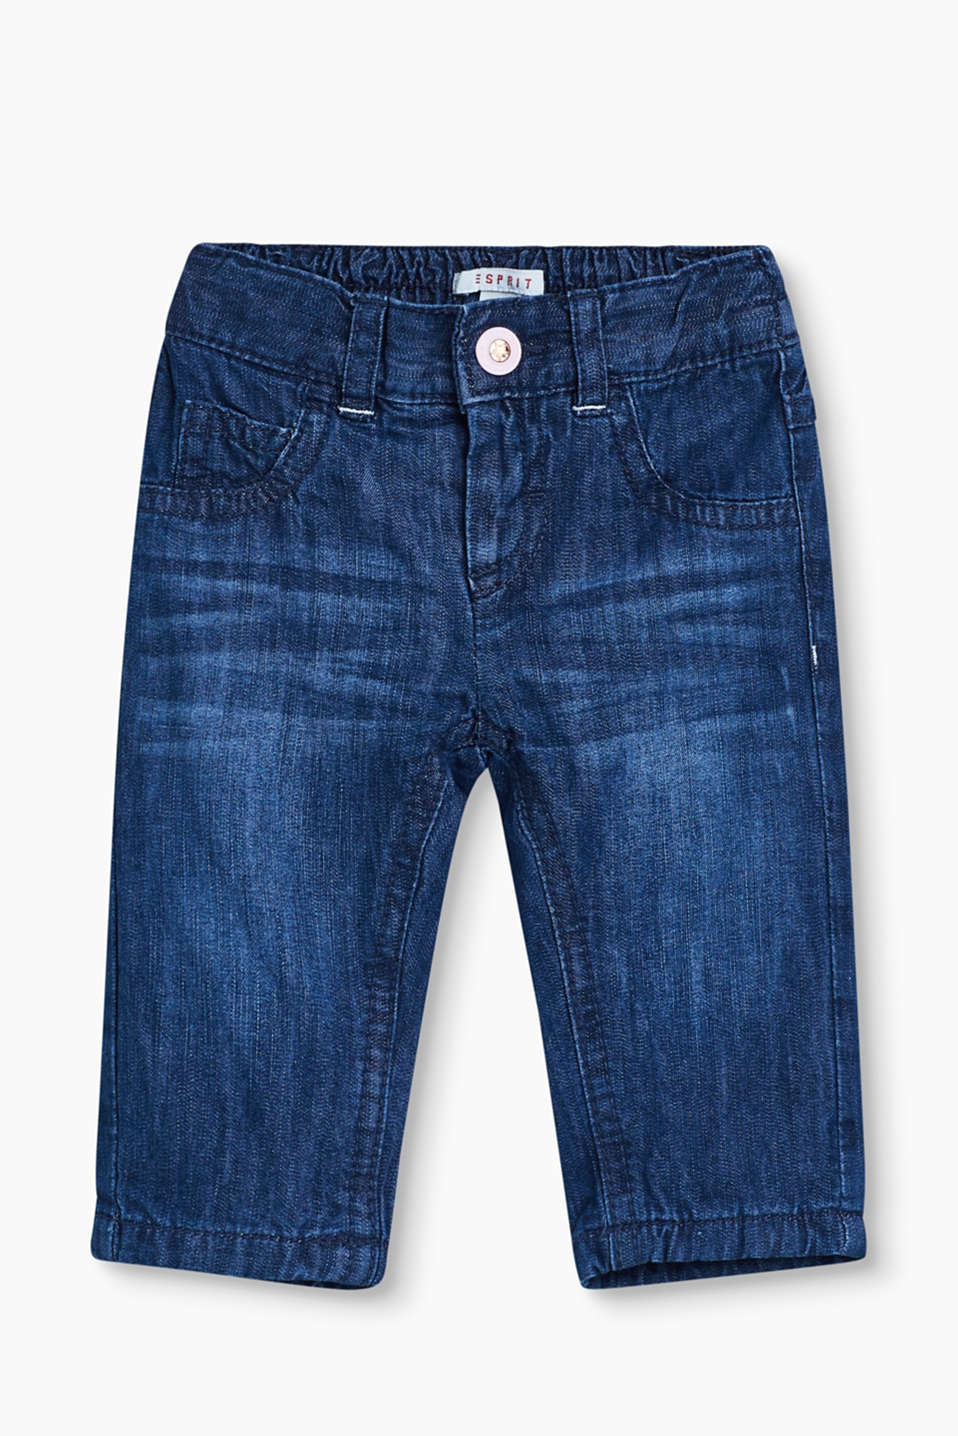 Super comfy + super cute! The elasticated waistband and inner lining make these soft, 100% cotton jeans really special.